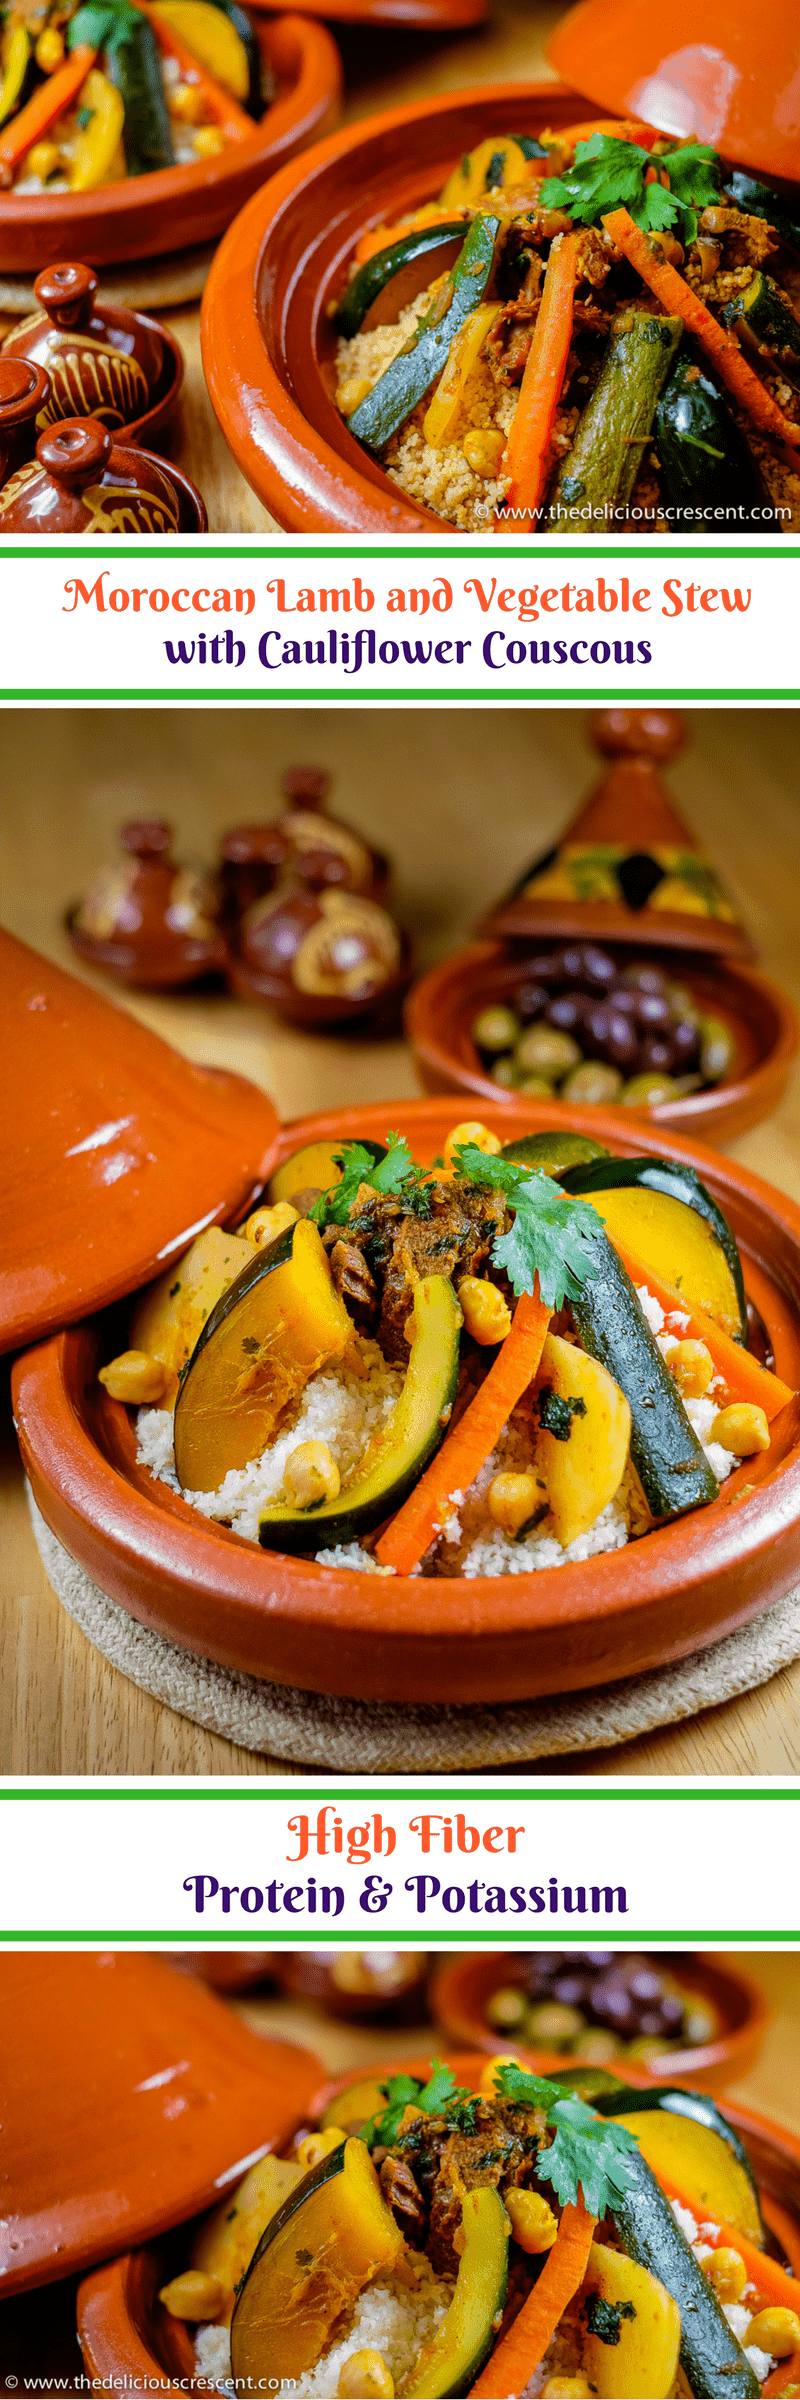 Moroccan Lamb and Vegetable Stew with Cauliflower Couscous is a flavorful, comforting, complete meal, full of herbs and spices. Loaded with protein, fiber and potassium.